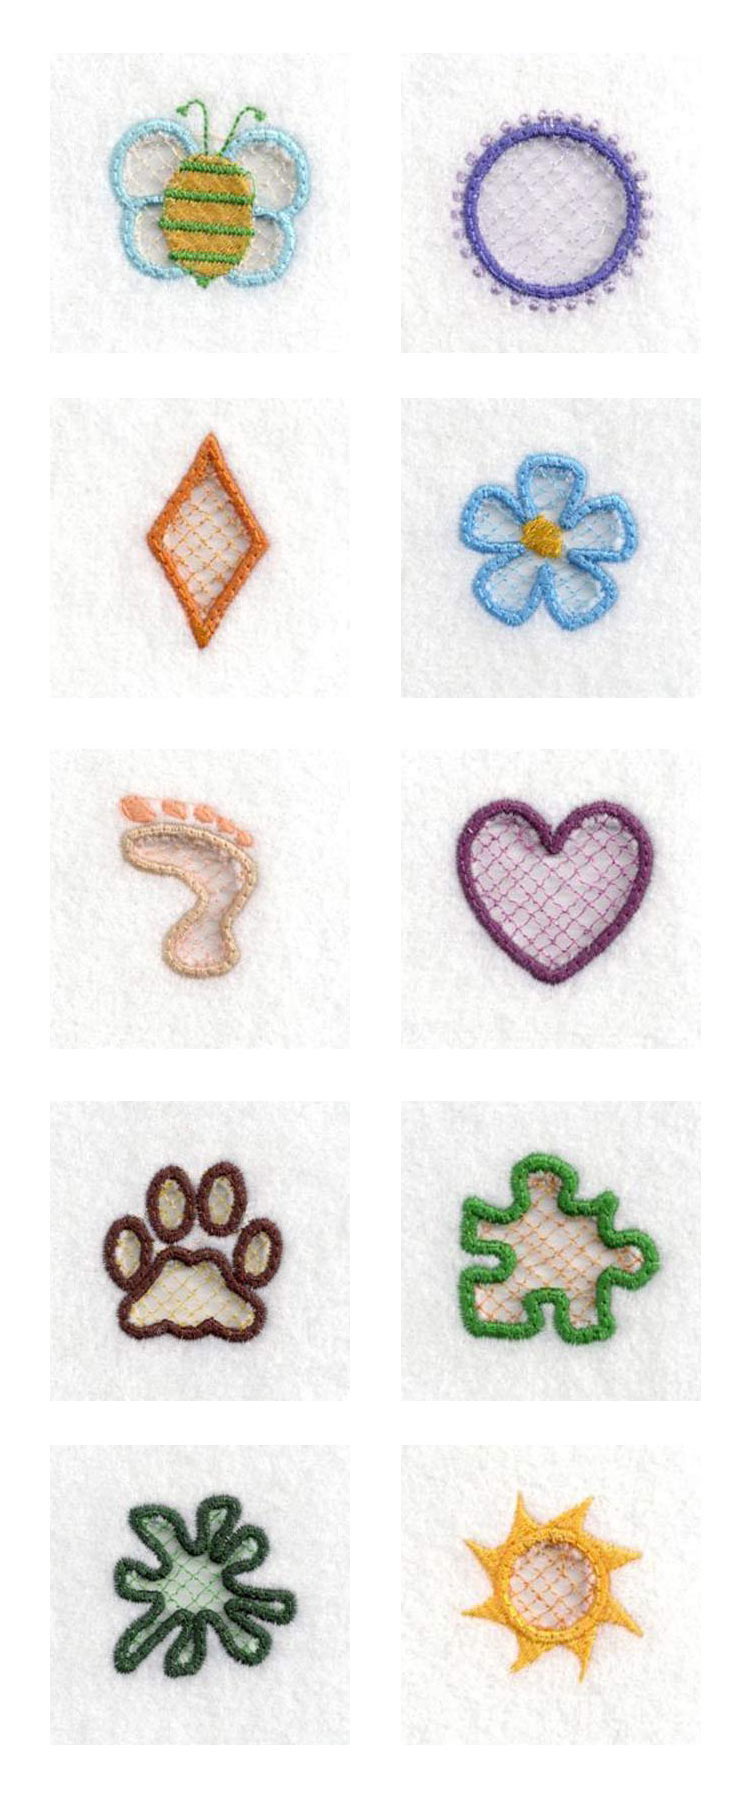 Cut Out Charms Embroidery Machine Design Details